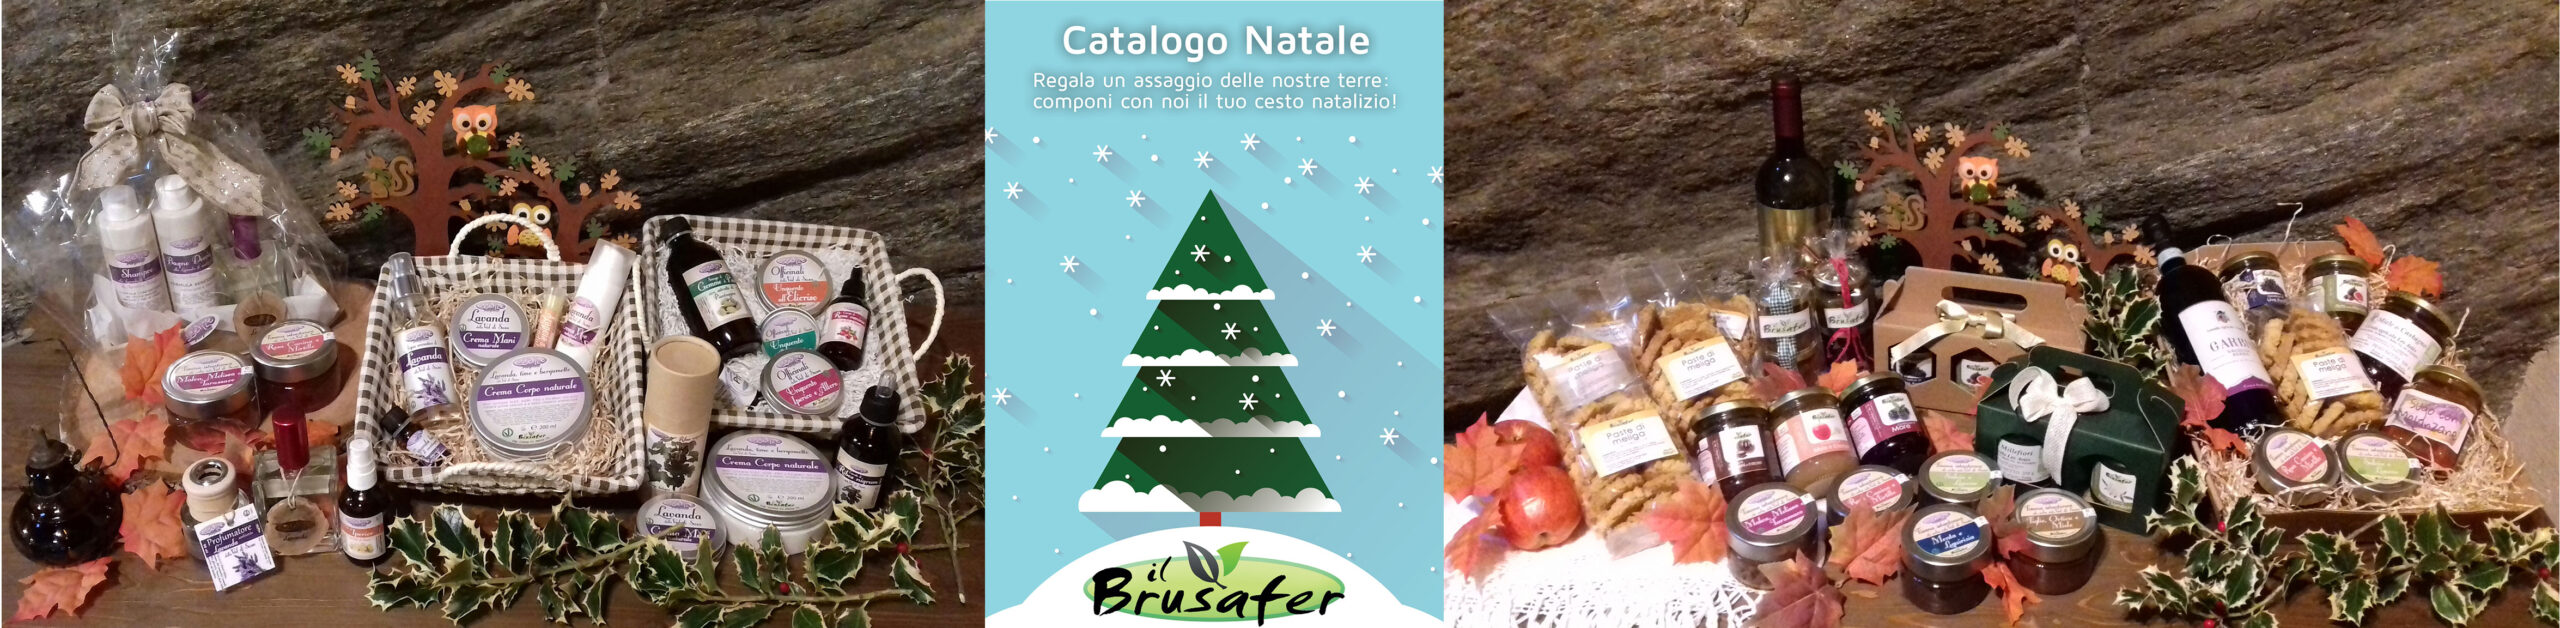 Natale 2020 Il Brusafer